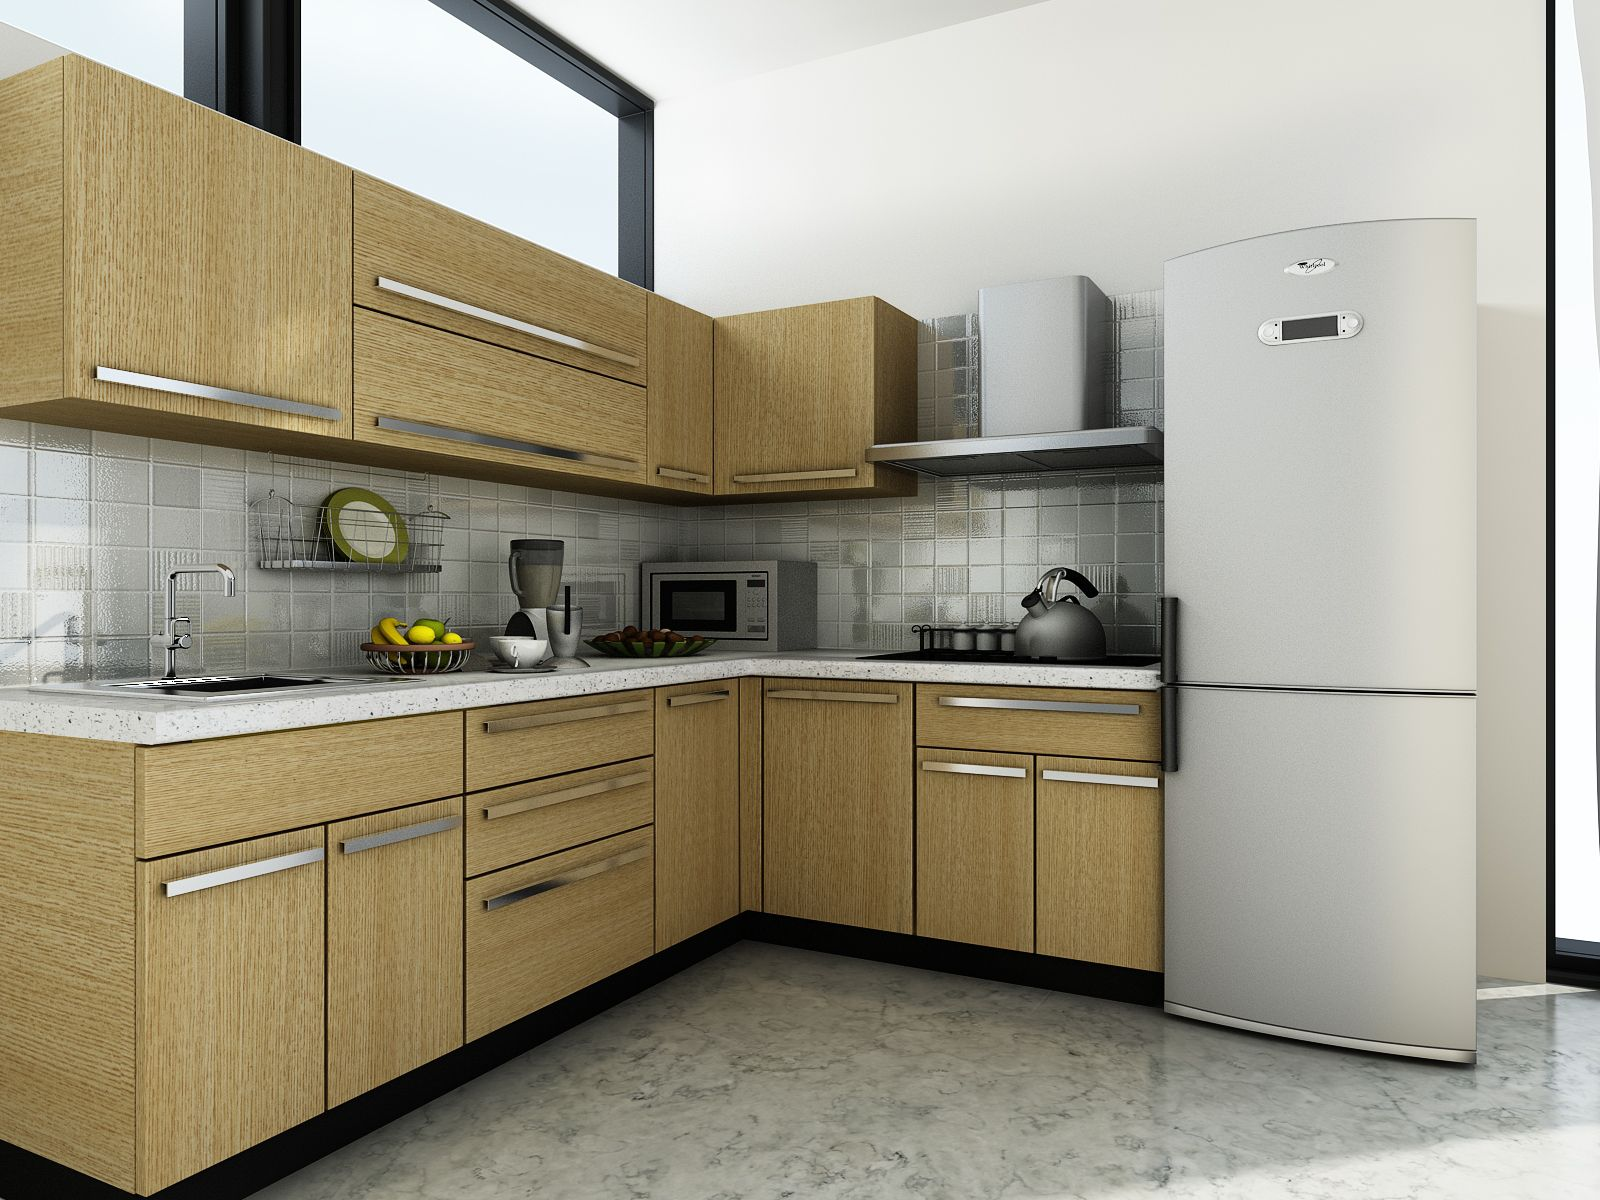 Modular Kitchen Design For L Shape Customfurnish L Shaped Kitchen Design Modular